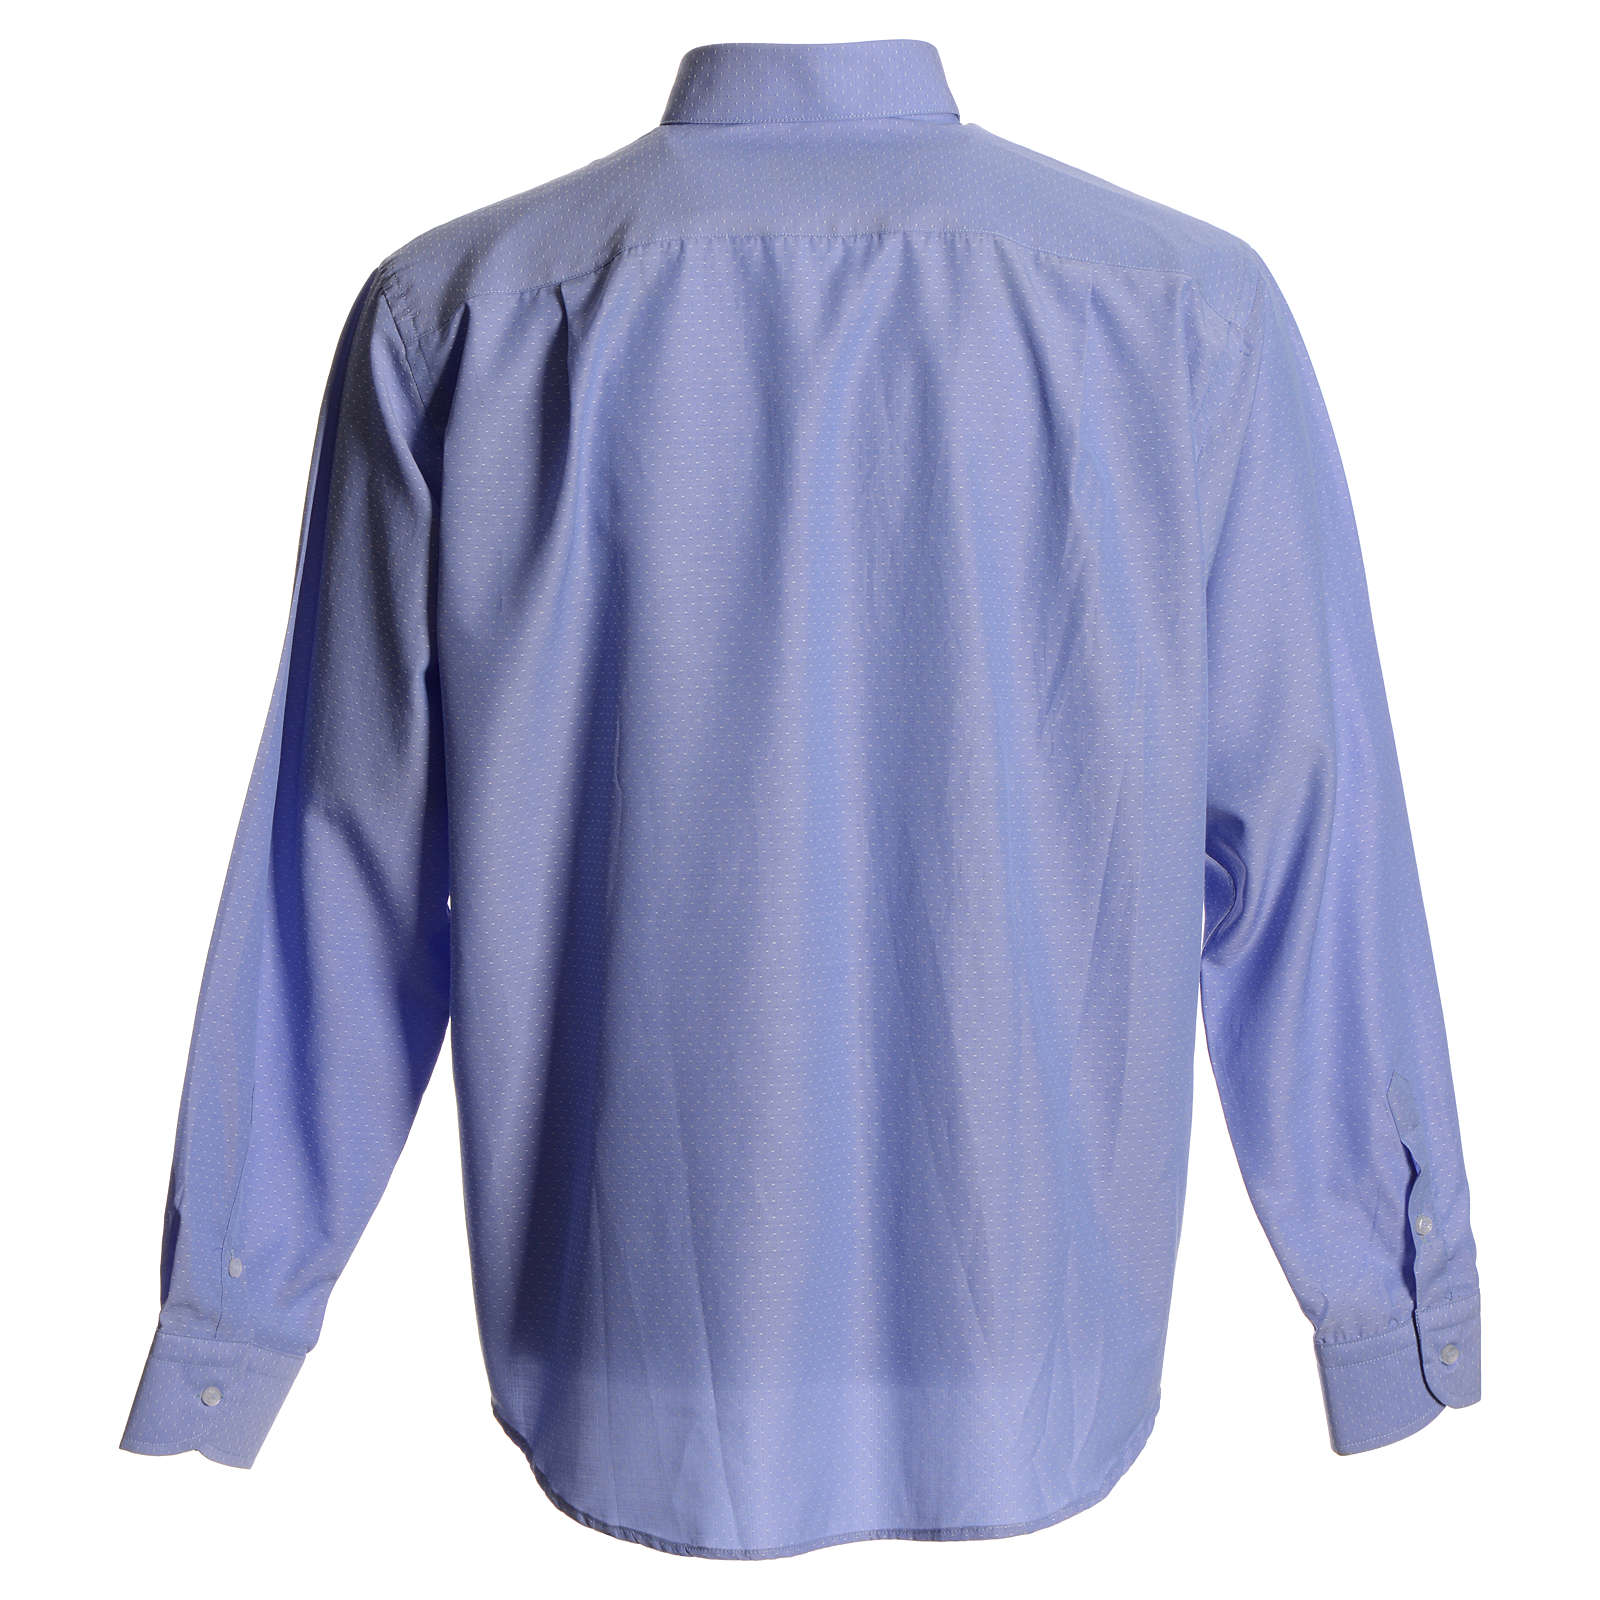 Clerical shirt in sky blue polyester cotton 4